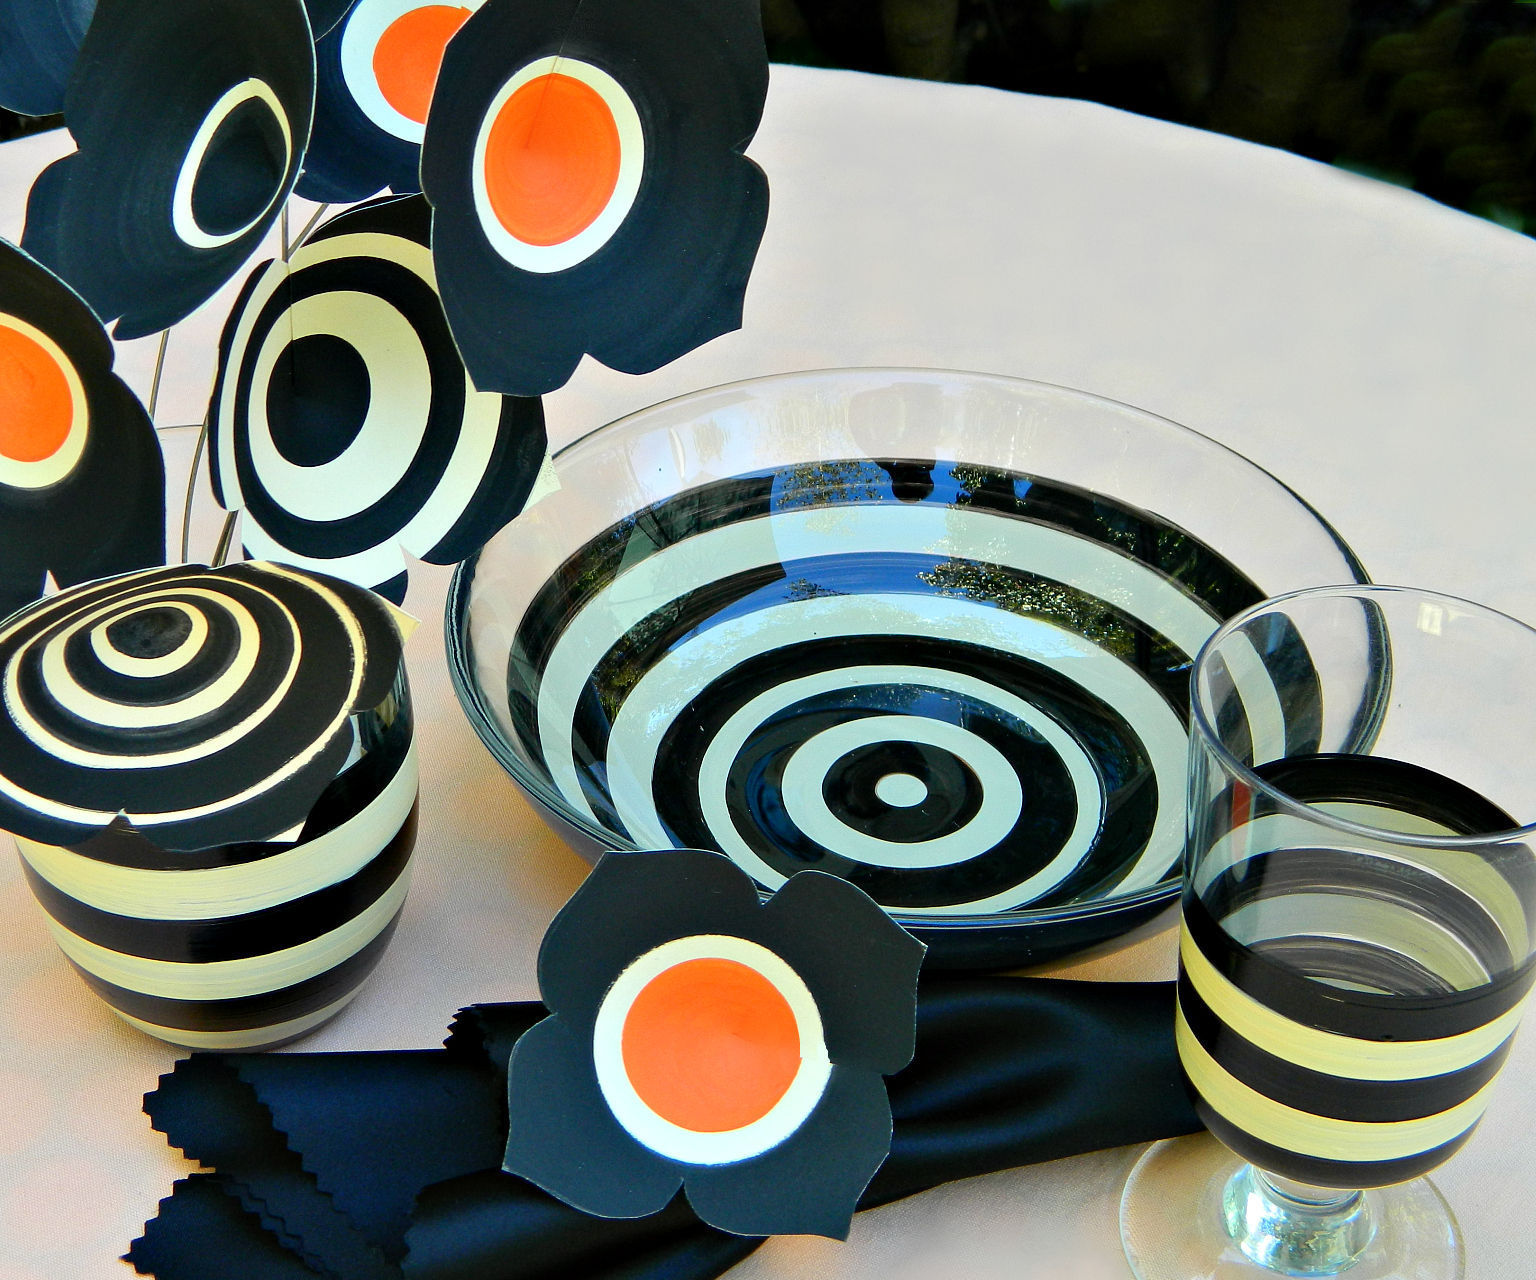 BEETLEJUICE inspired table setting